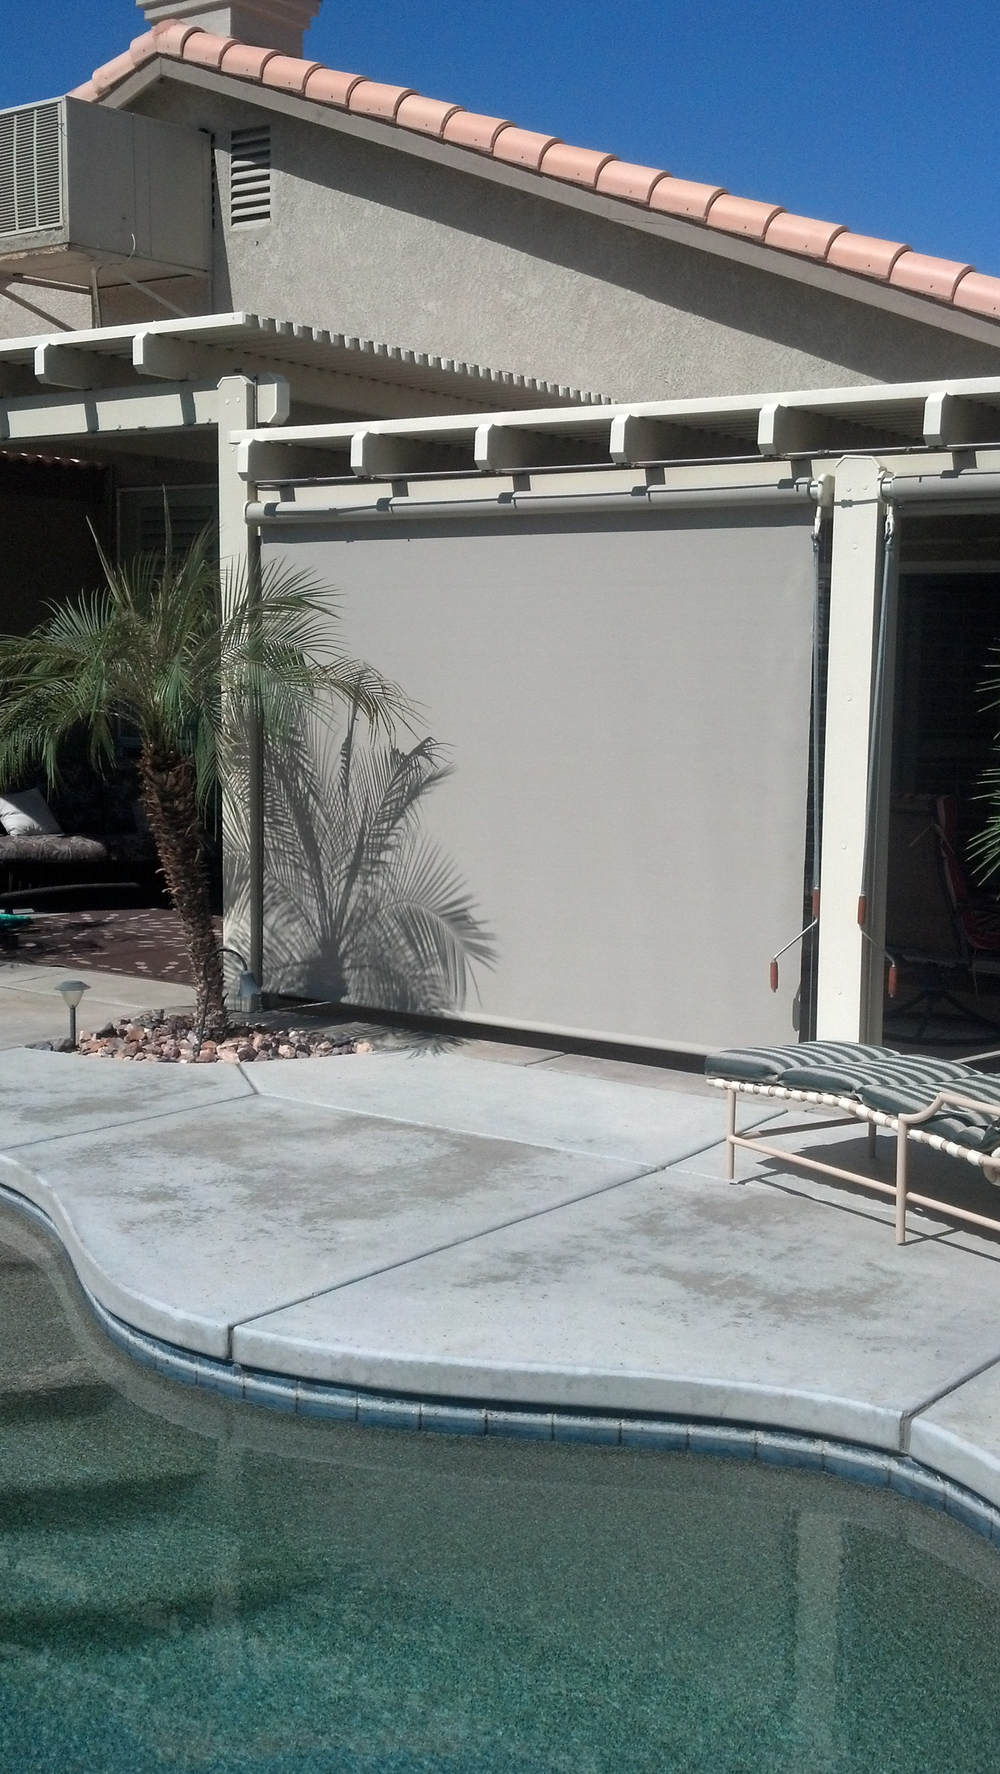 Drop Screen to Shade Outdoor Patio, Palm Desert, CA 92260